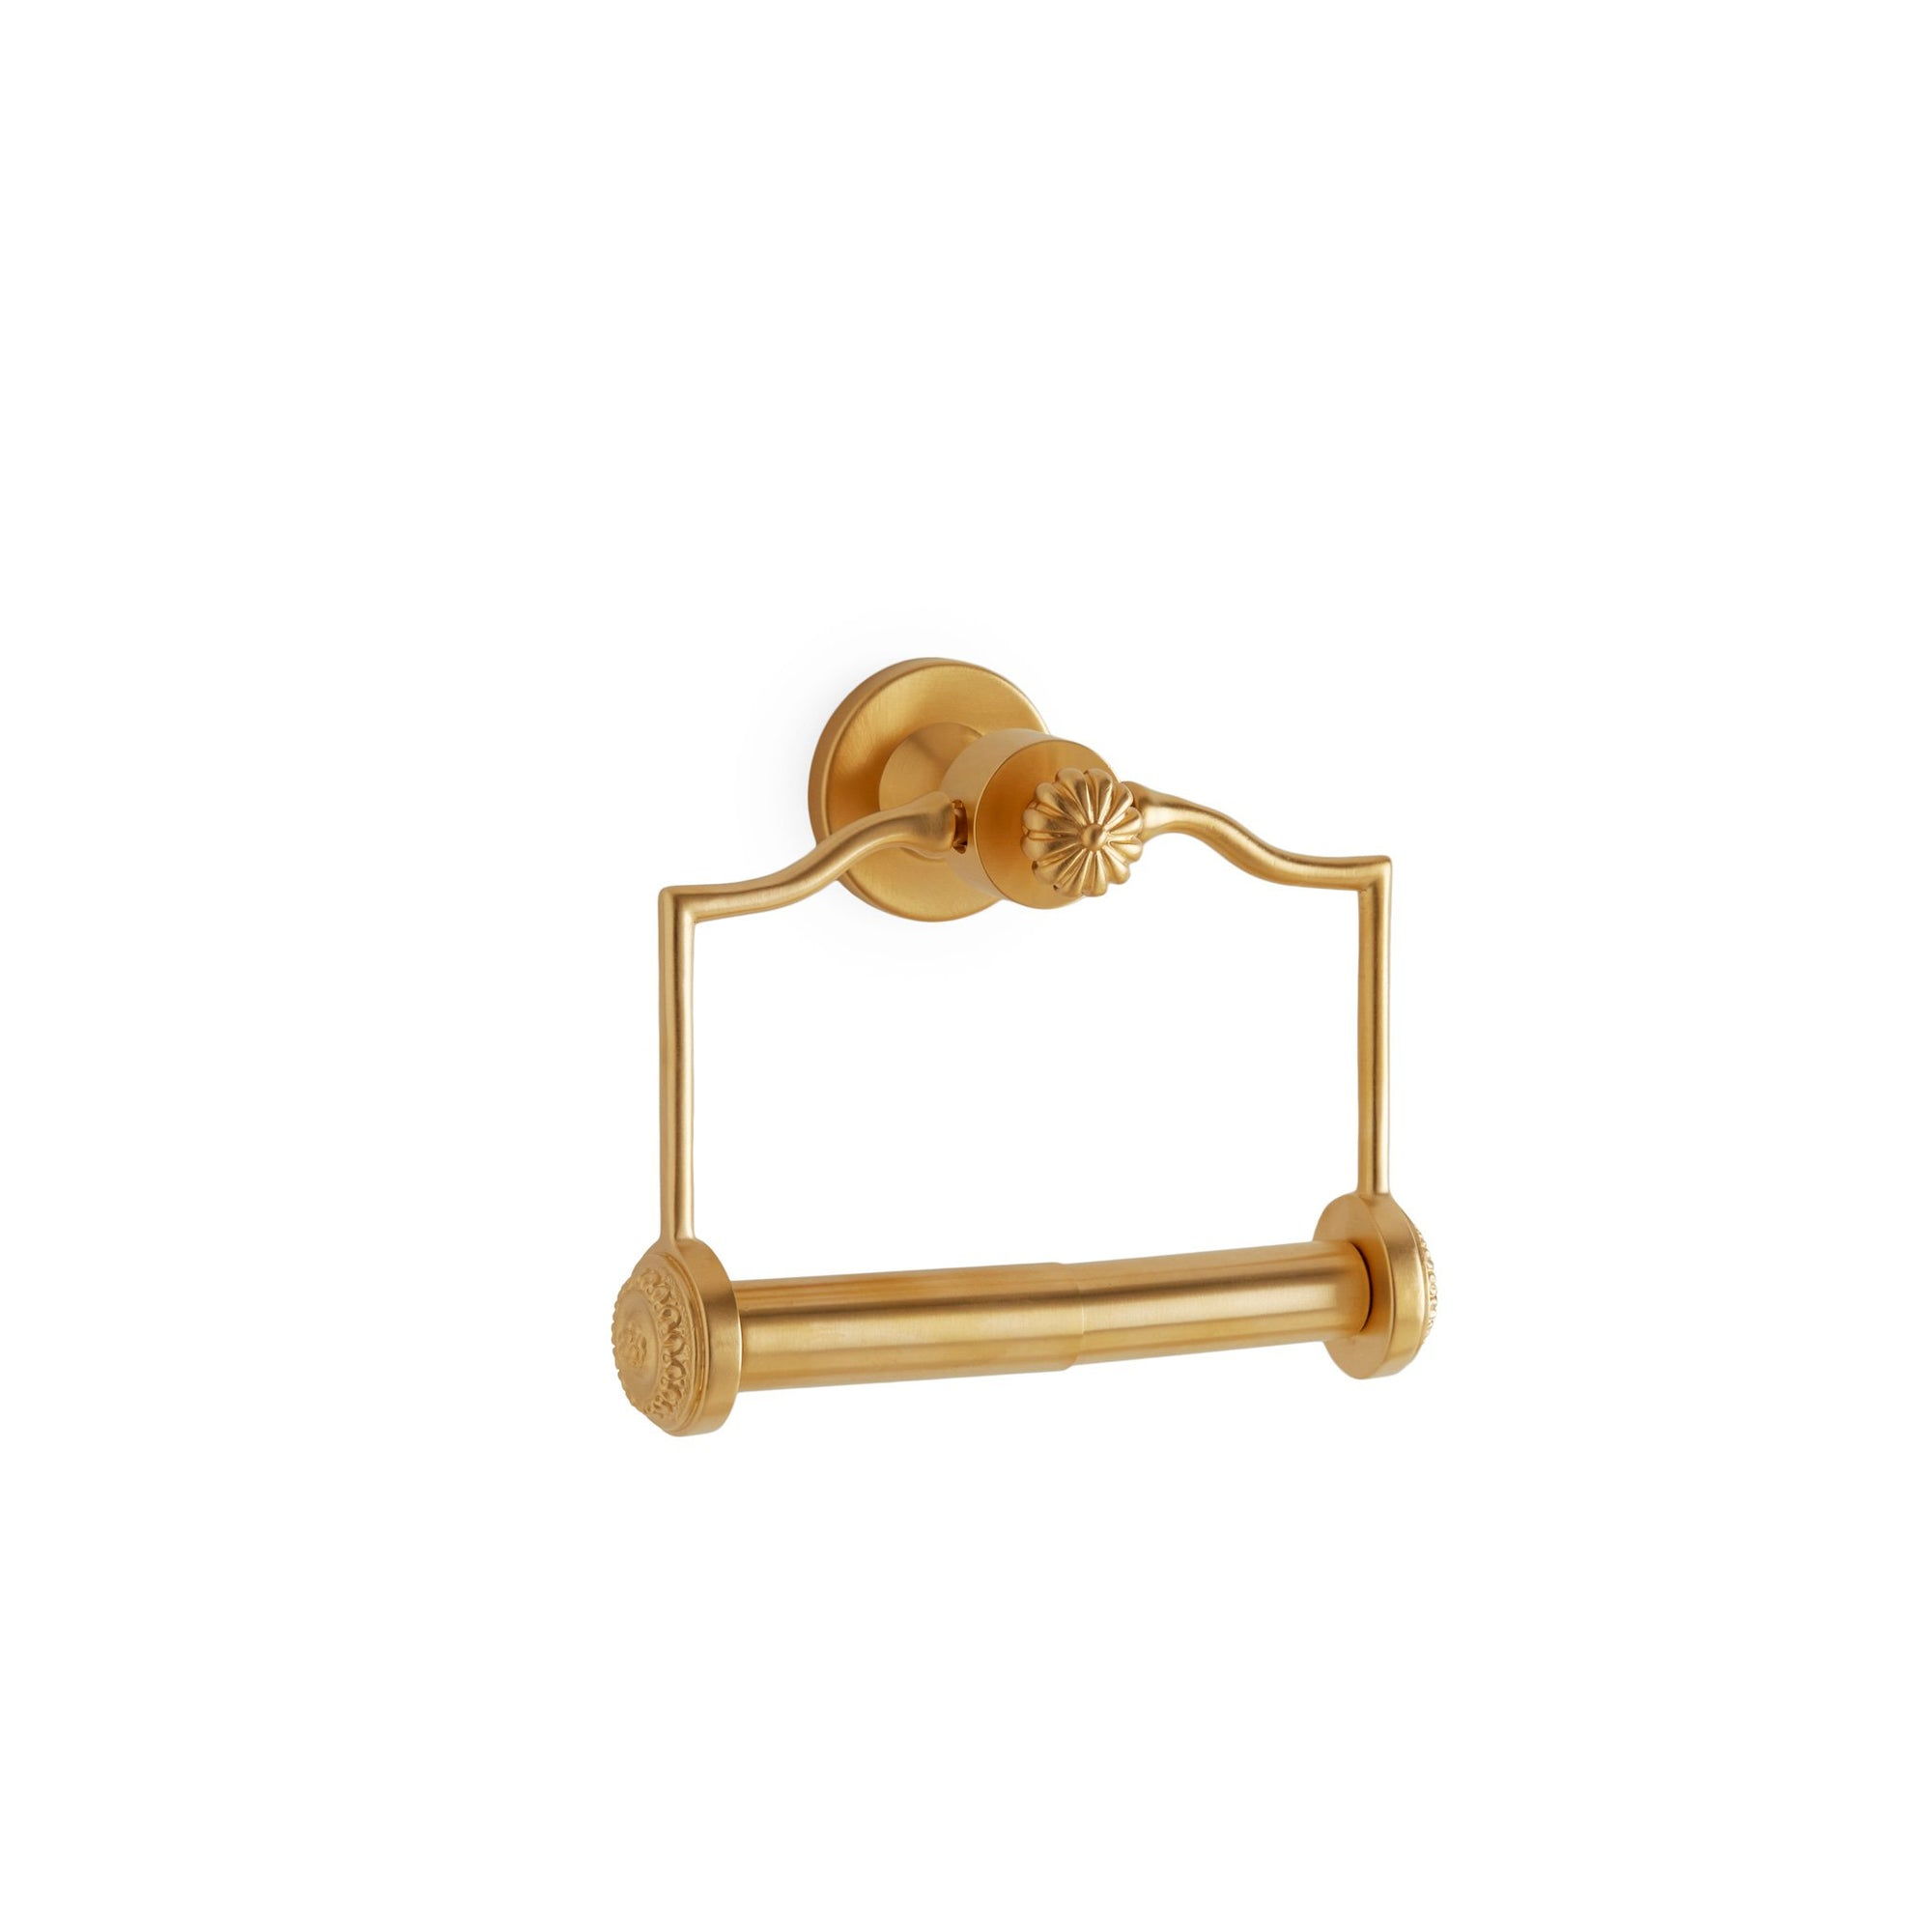 3532-GP Sherle Wagner International Melon Paper Holder in Gold Plate metal finish